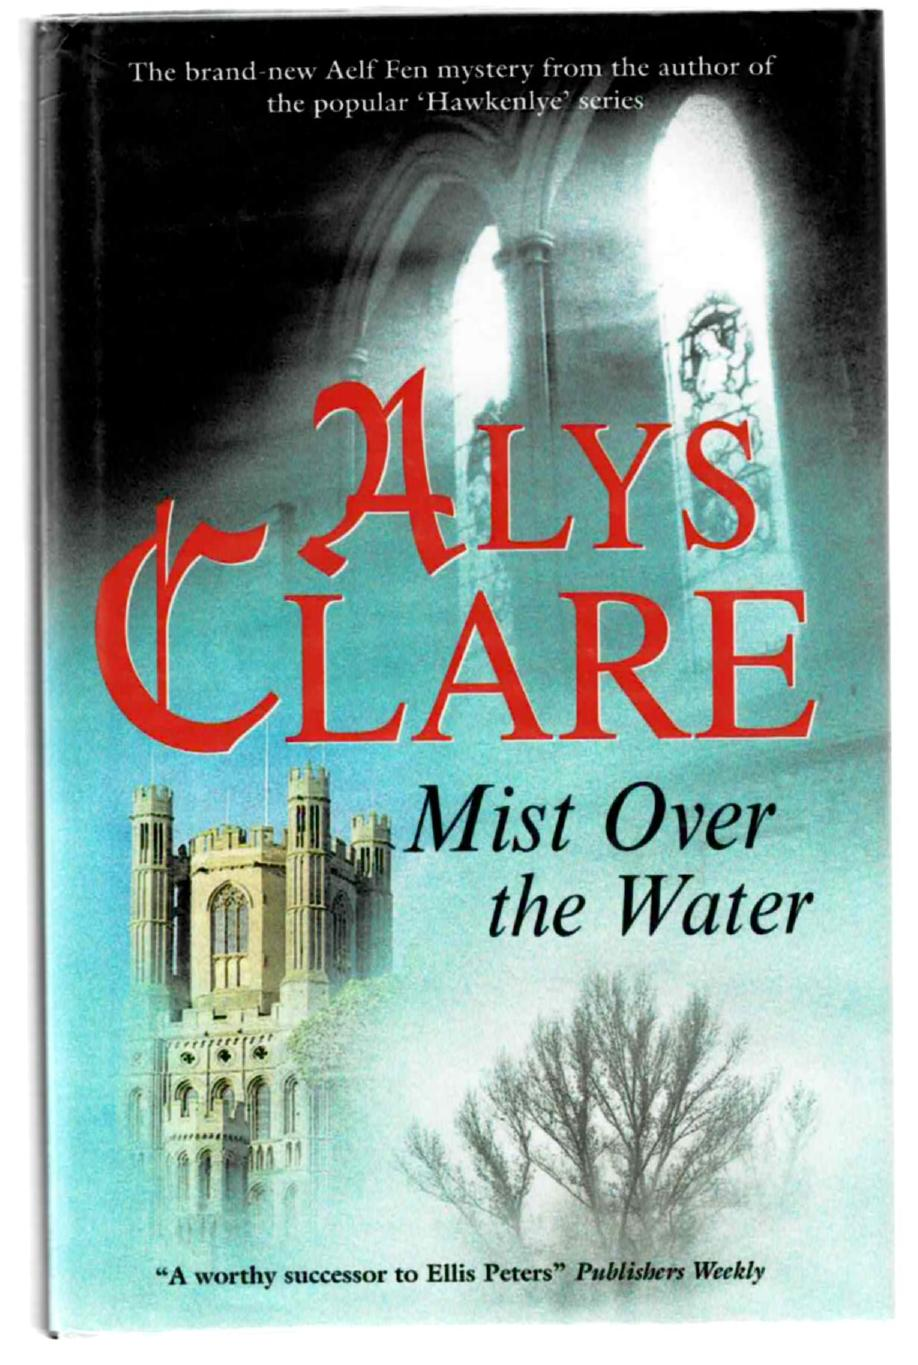 Image for Mist Over Water: (An Aelf Fen Mystery)